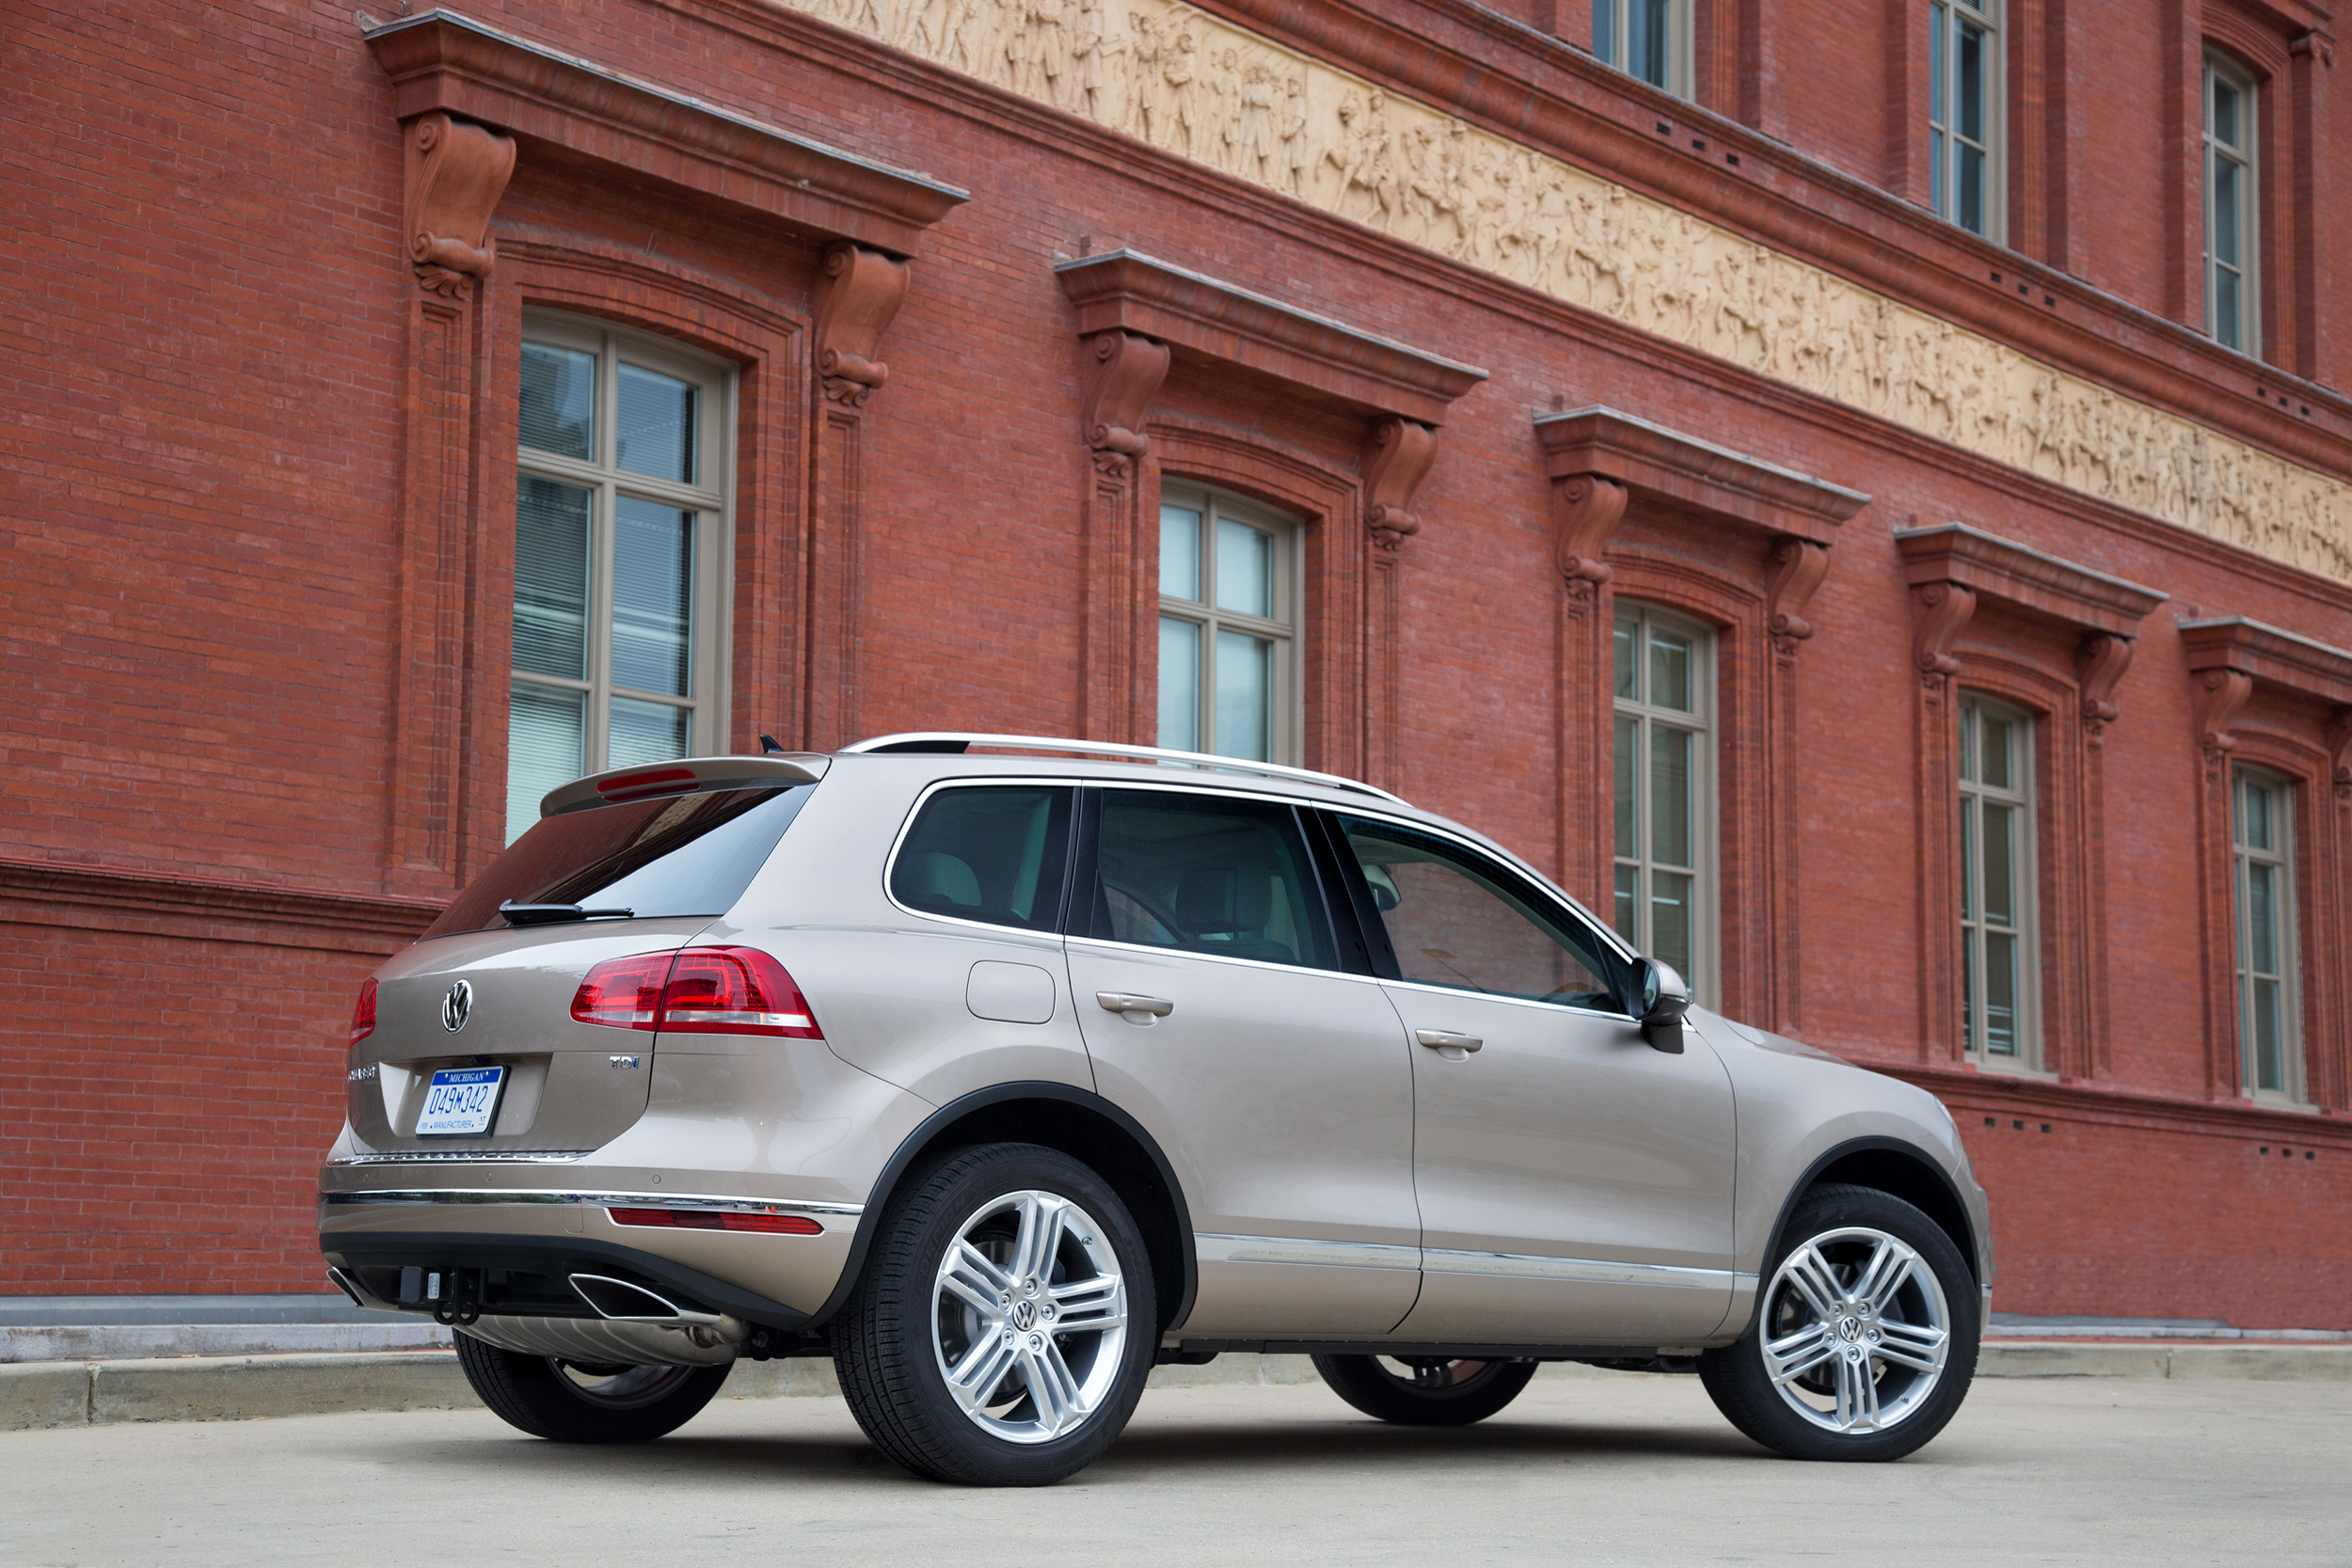 touareg years motor and be on a more from by news same detroit blue five platform vw as new co show cars audi volkswagen inspired concept riding za motoring next will cross far the